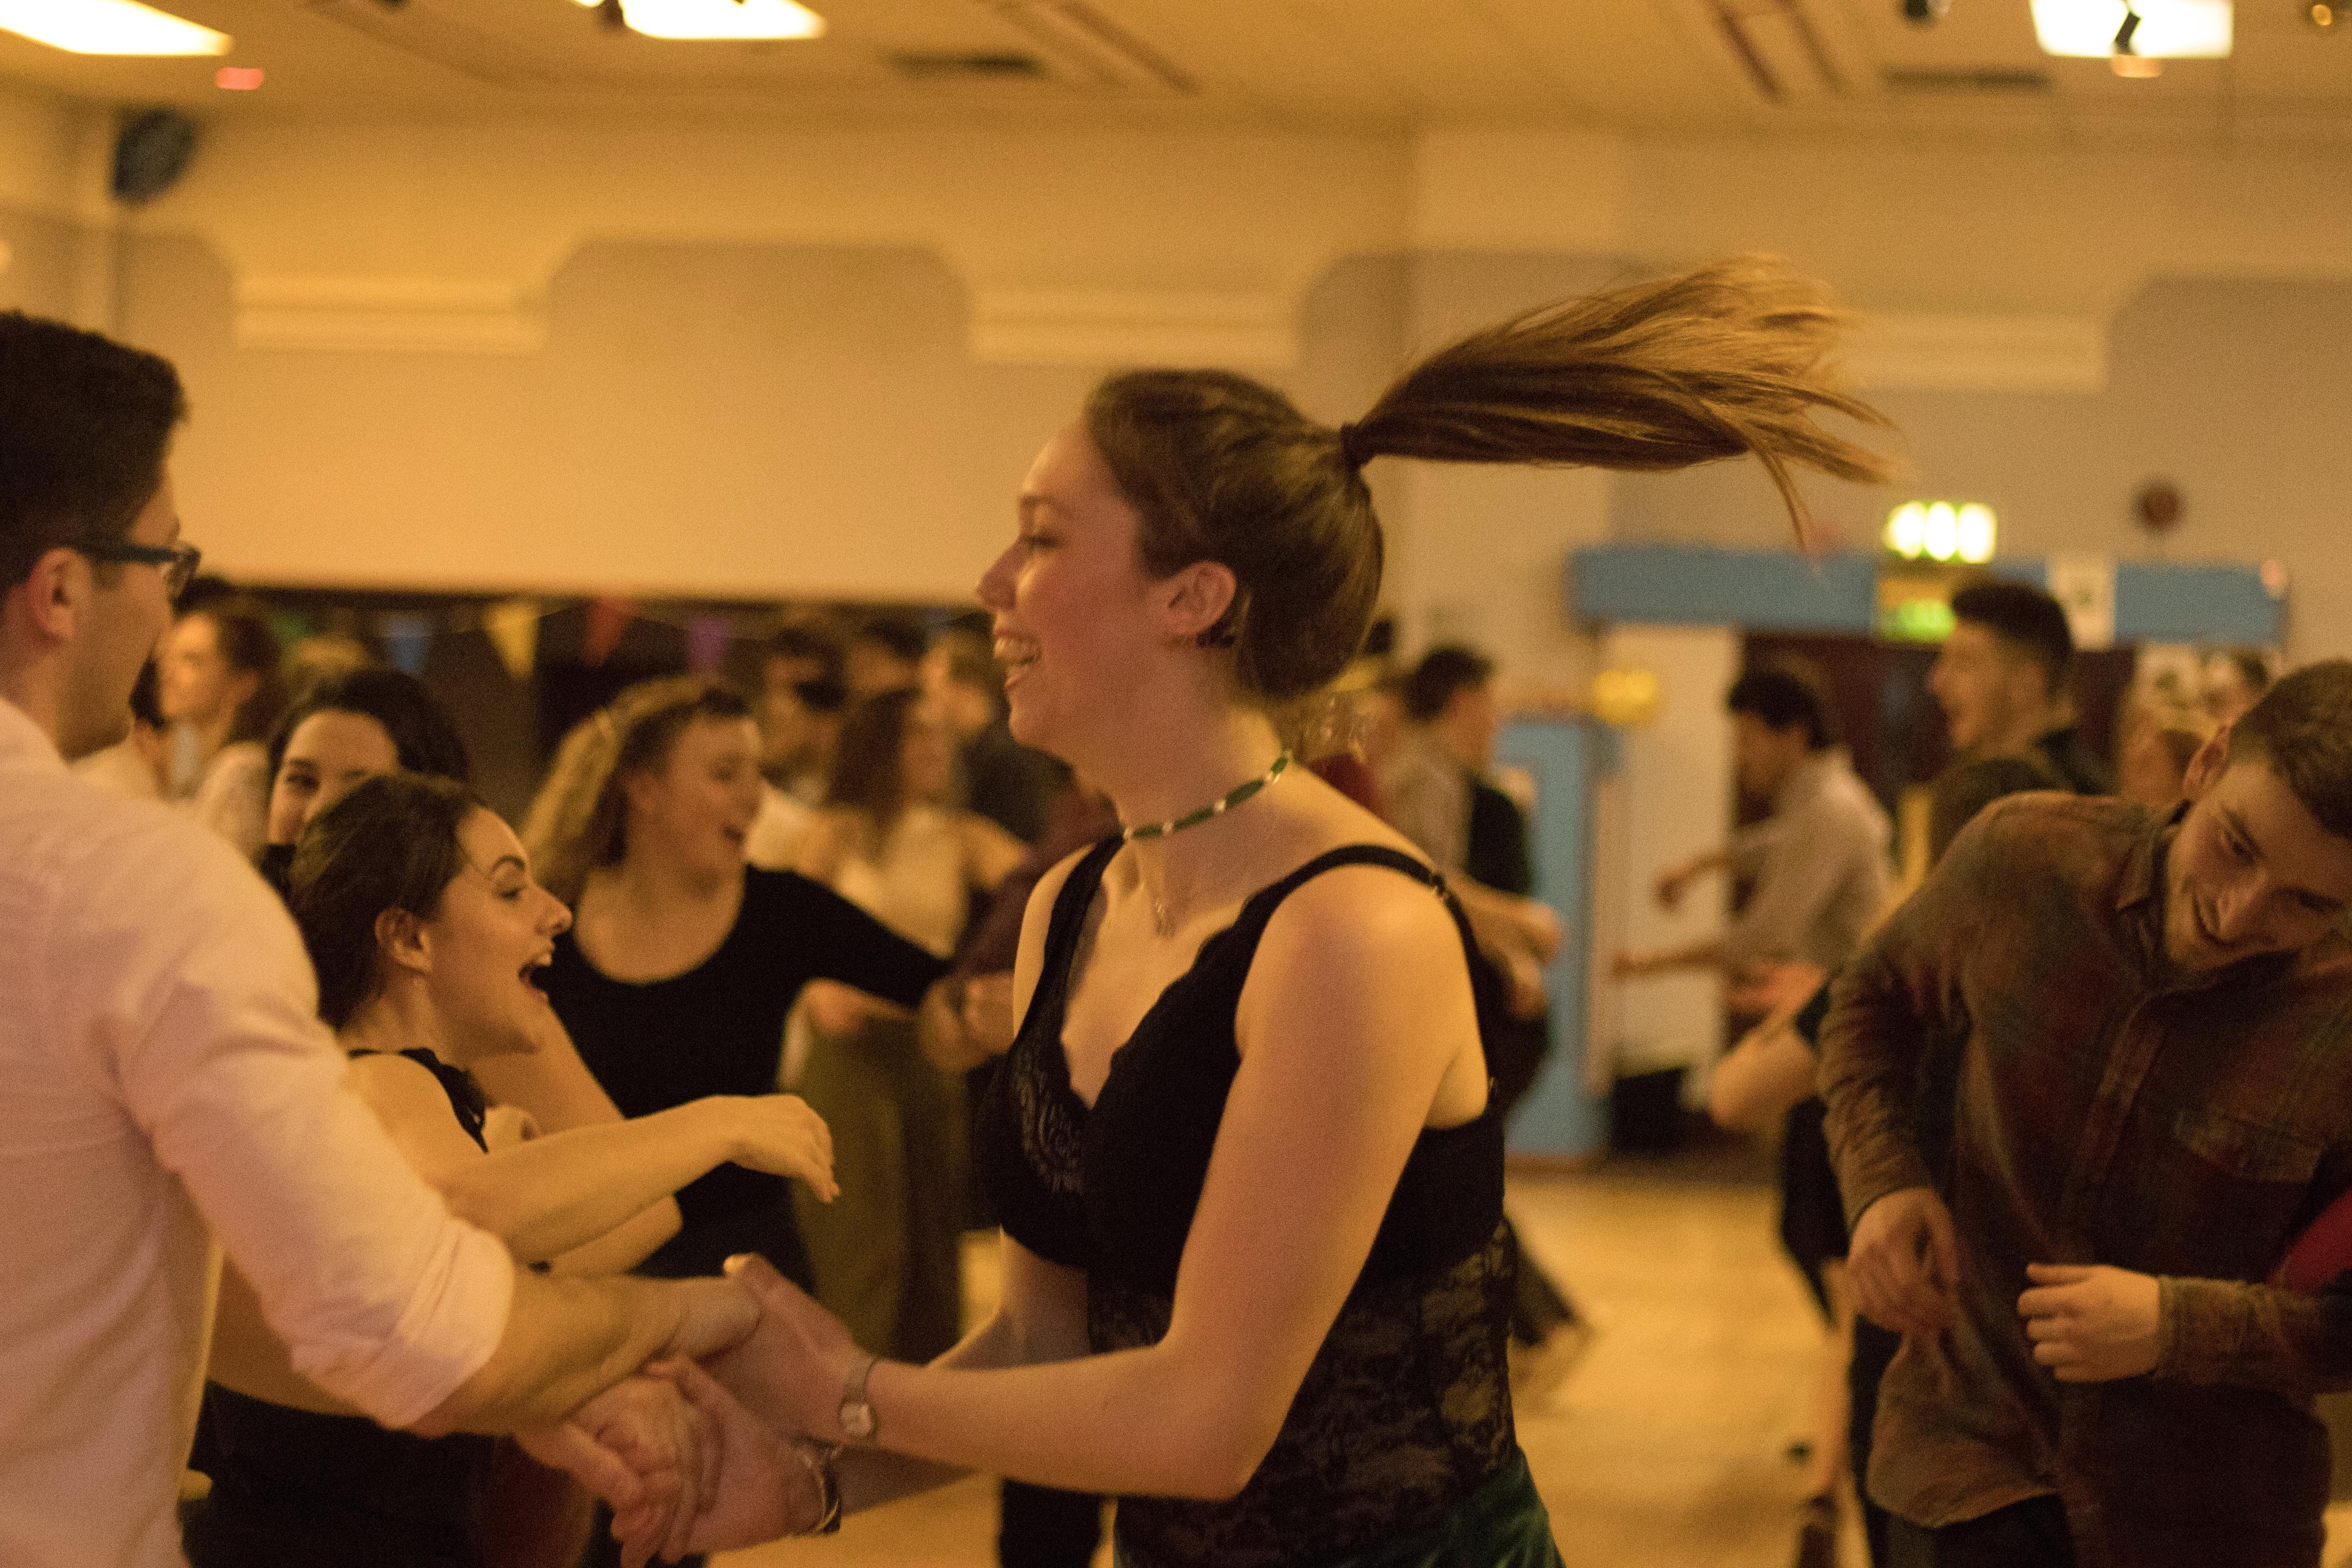 Ceilidh - dance them winter blues away with the incredible Burdock Band